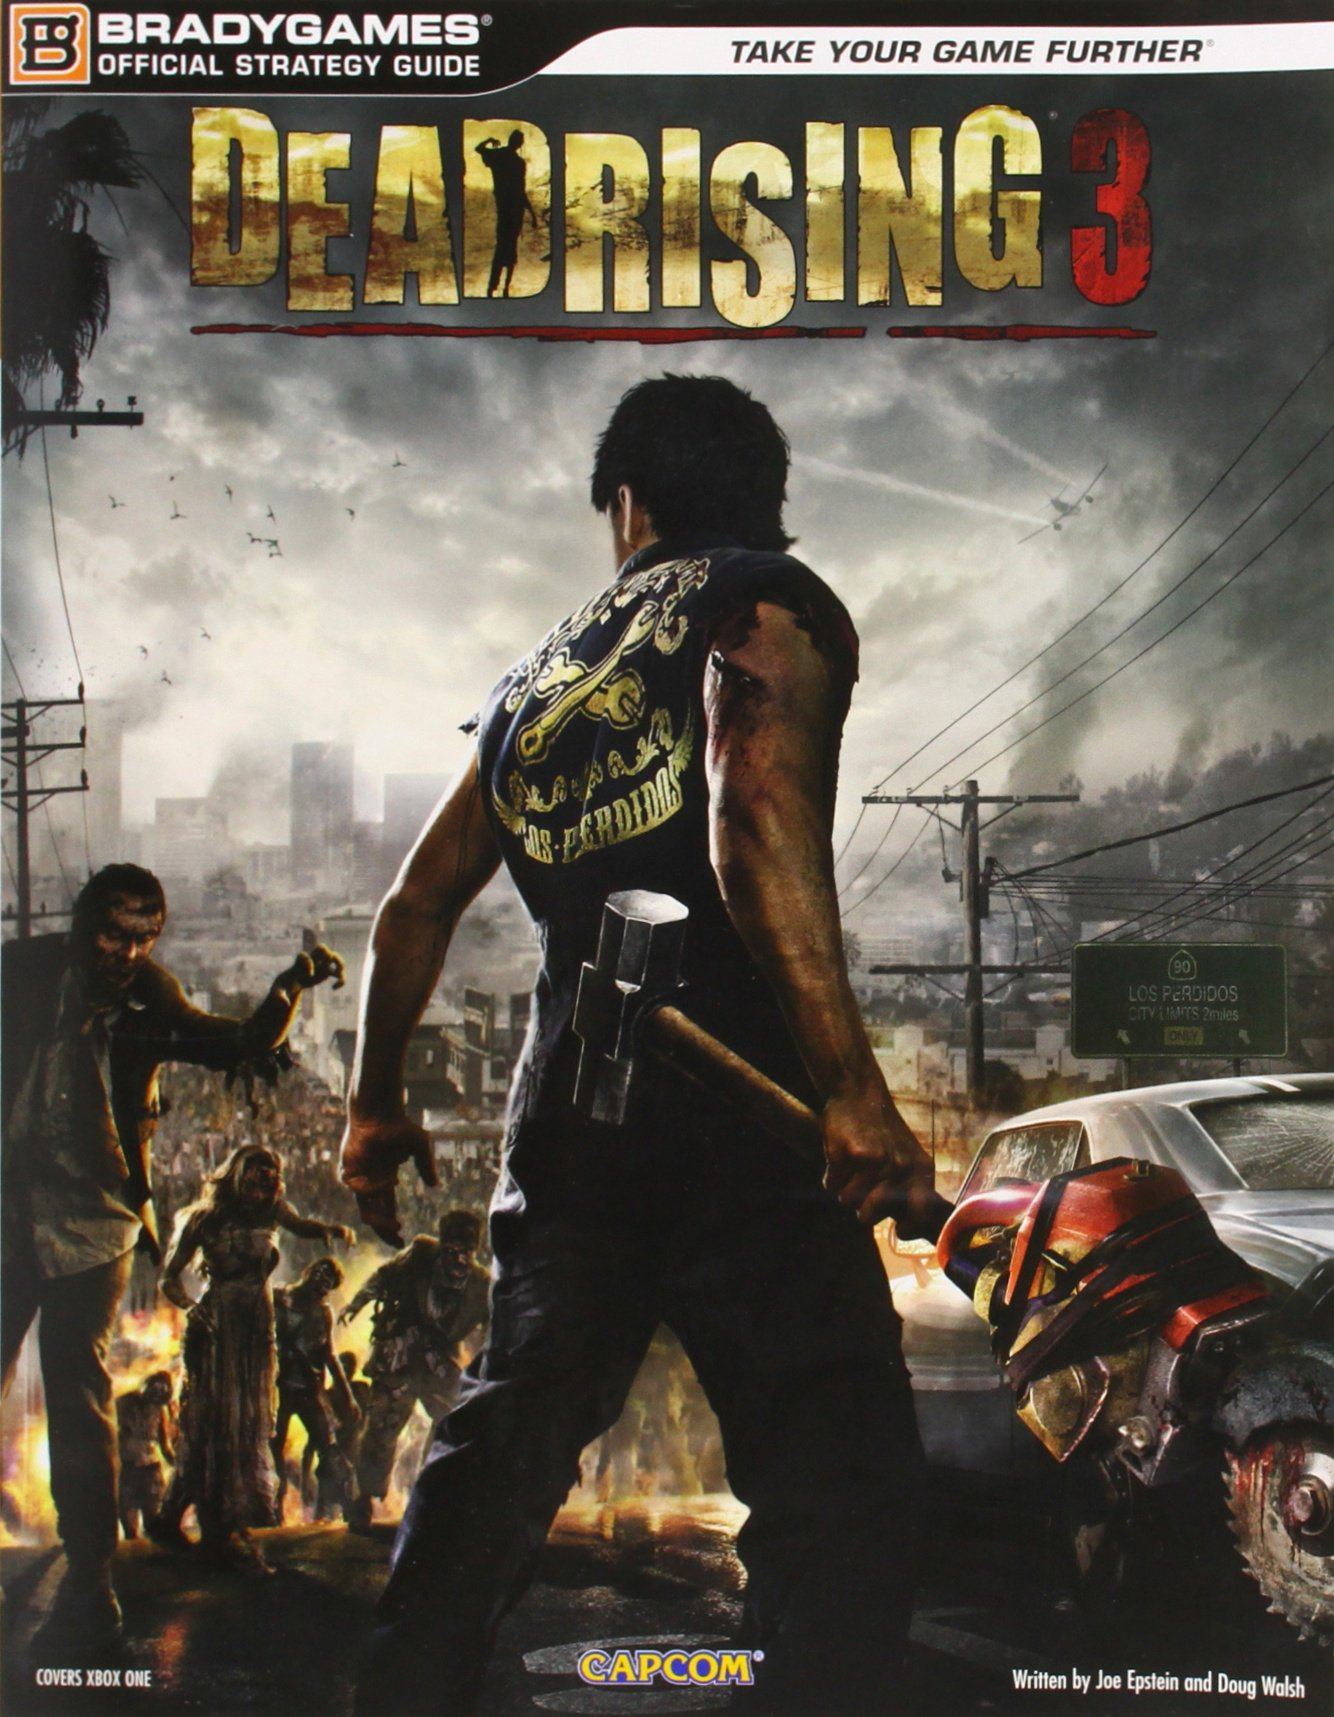 Dead Rising 3 Official Strategy Guide (Bradygames): Amazon.es ...